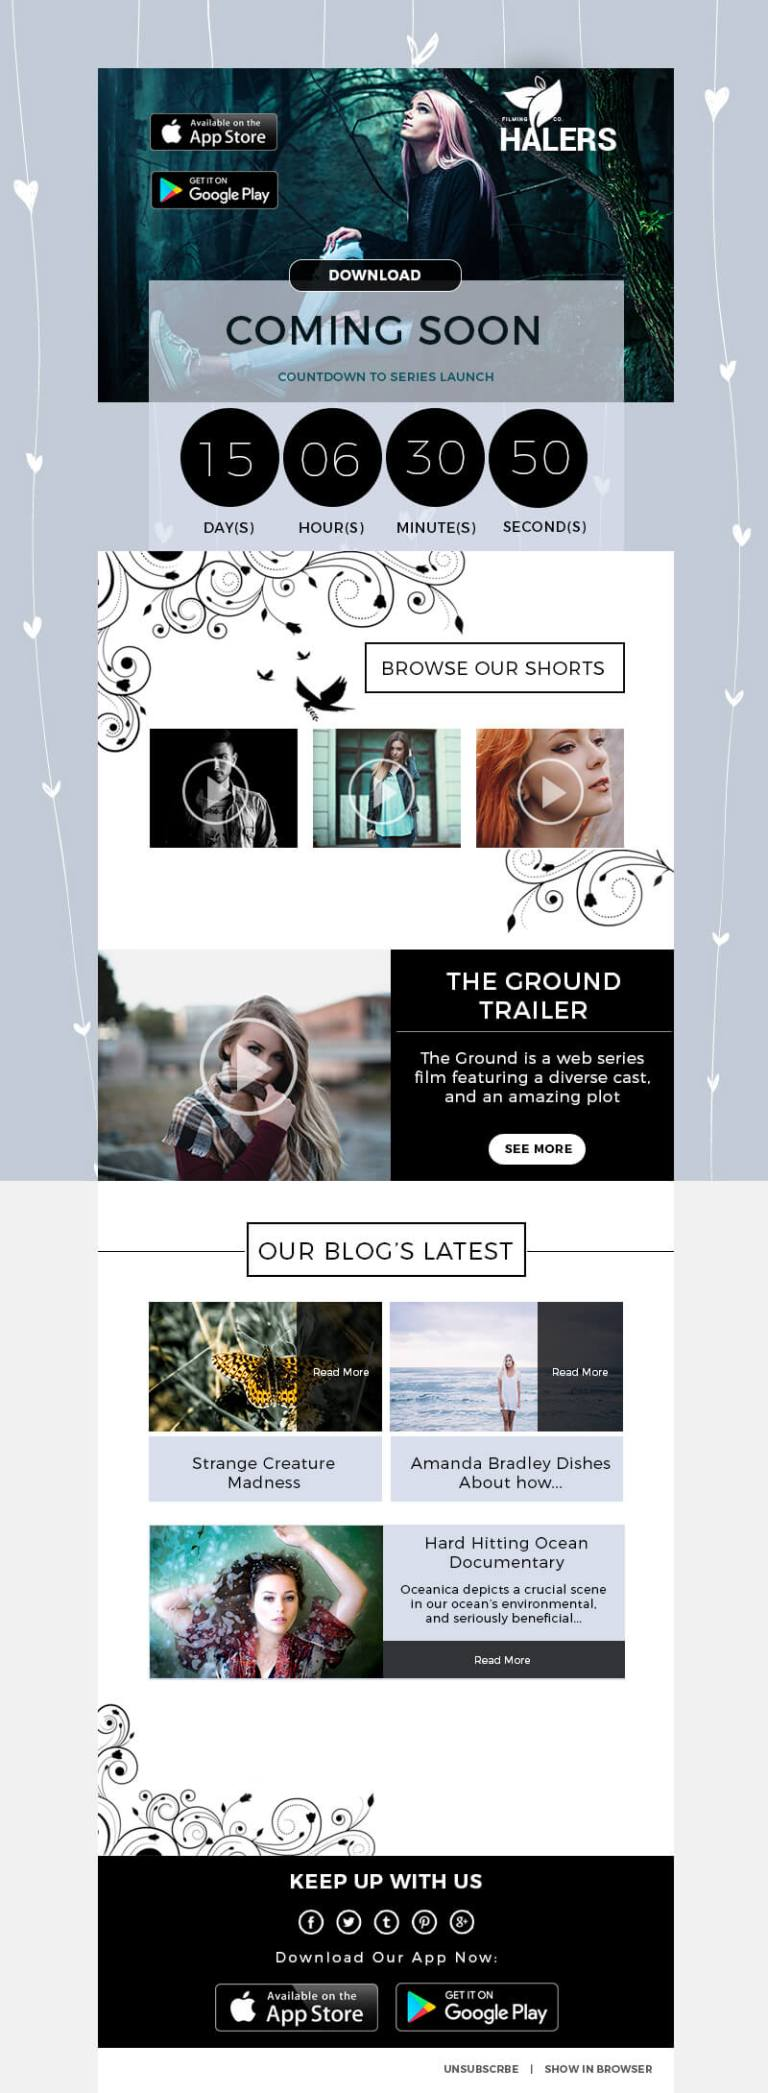 Film Photography Creative Photoshop Email Template IamGoneGirl Designs Photography   Creative Photoshop Email Newsletter Template Mailchimp Campaign Monitor Responsive Dark Best selling